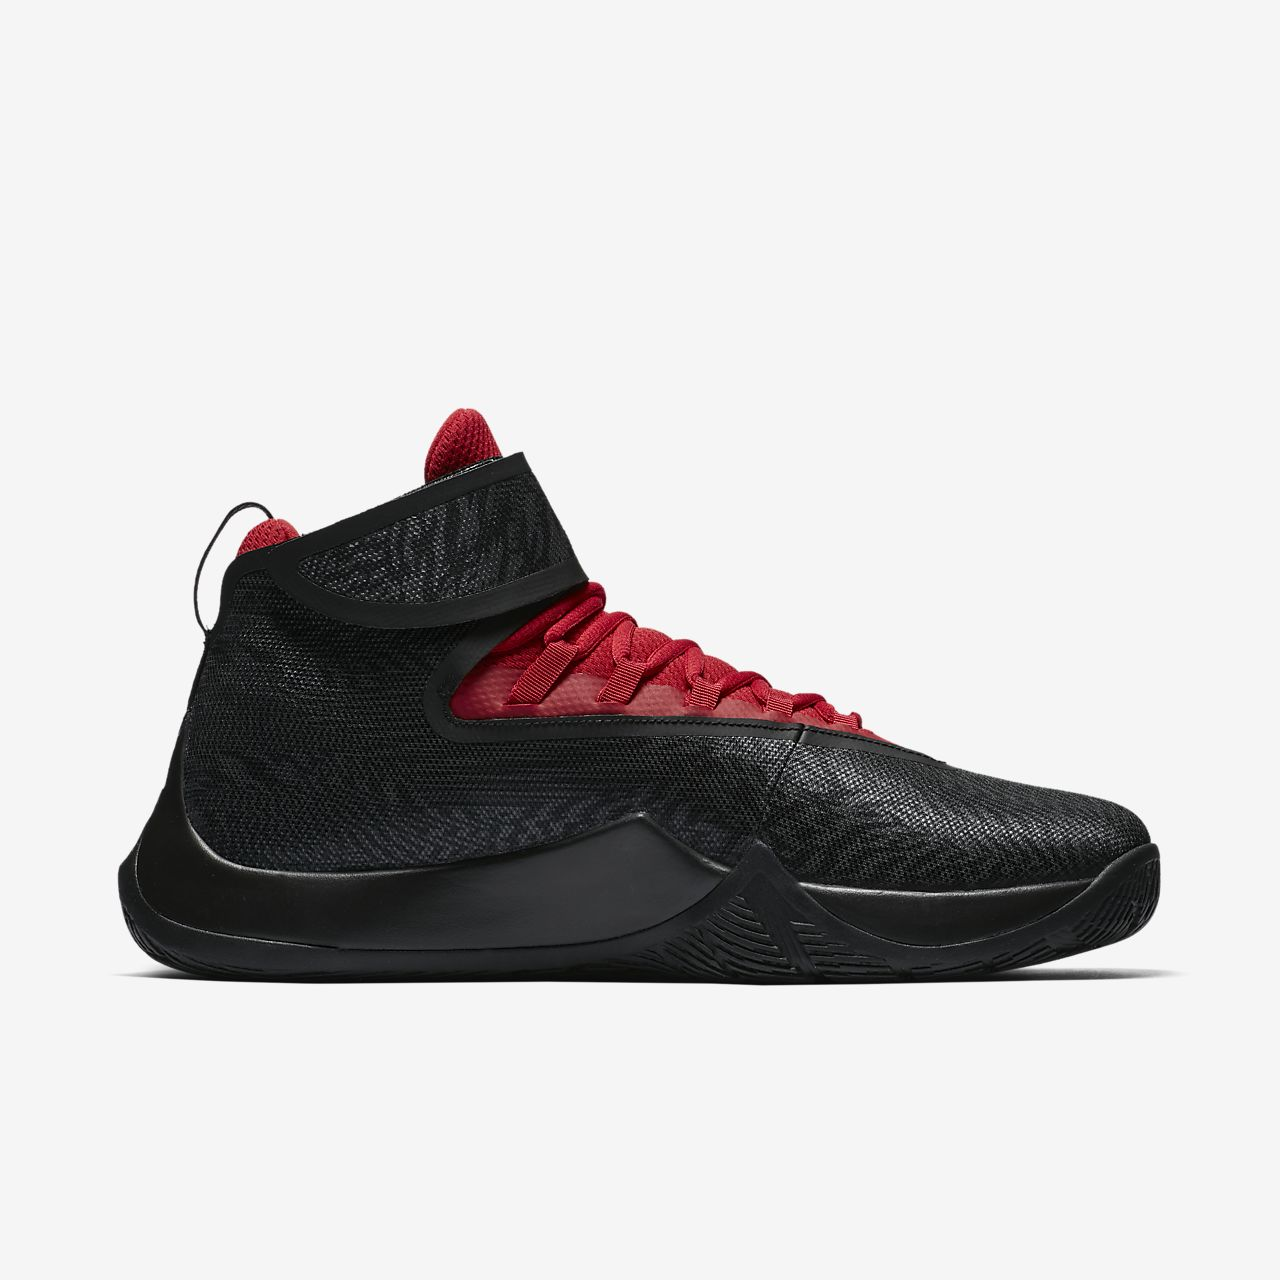 jordan fly unlimited basketball shoes